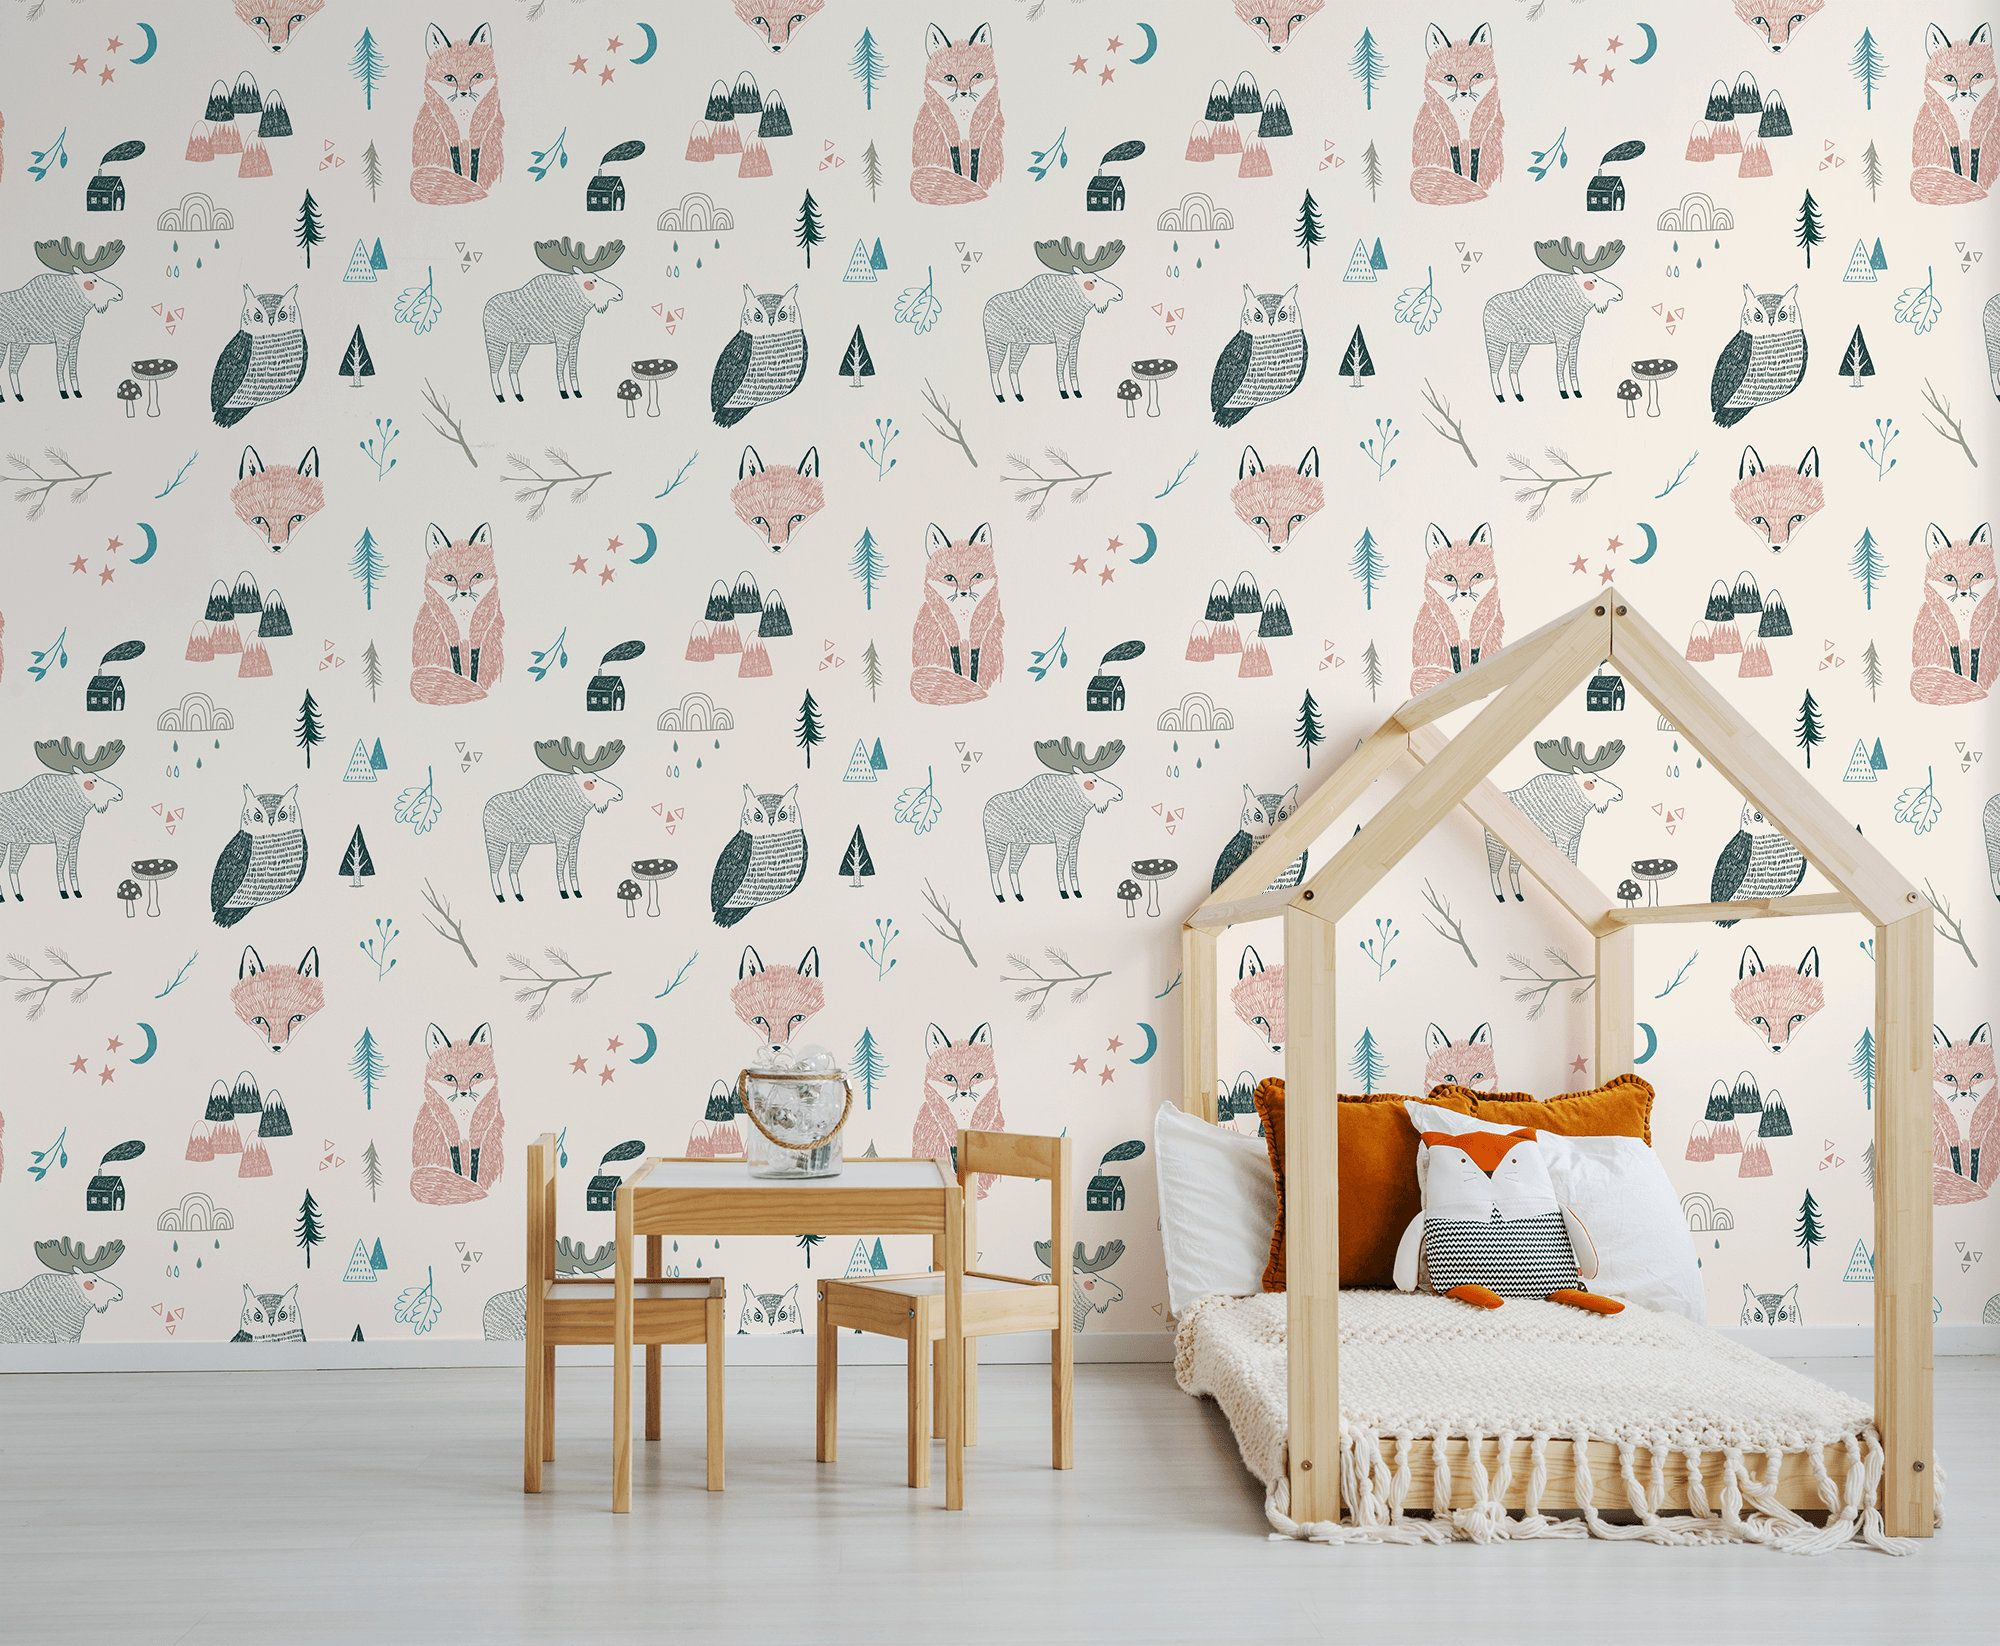 Kids Wallpaper With Forest Animals Peel And Stick Wall Mural Etsy Kids Wallpaper Kids Room Wallpaper Peal And Stick Wallpaper